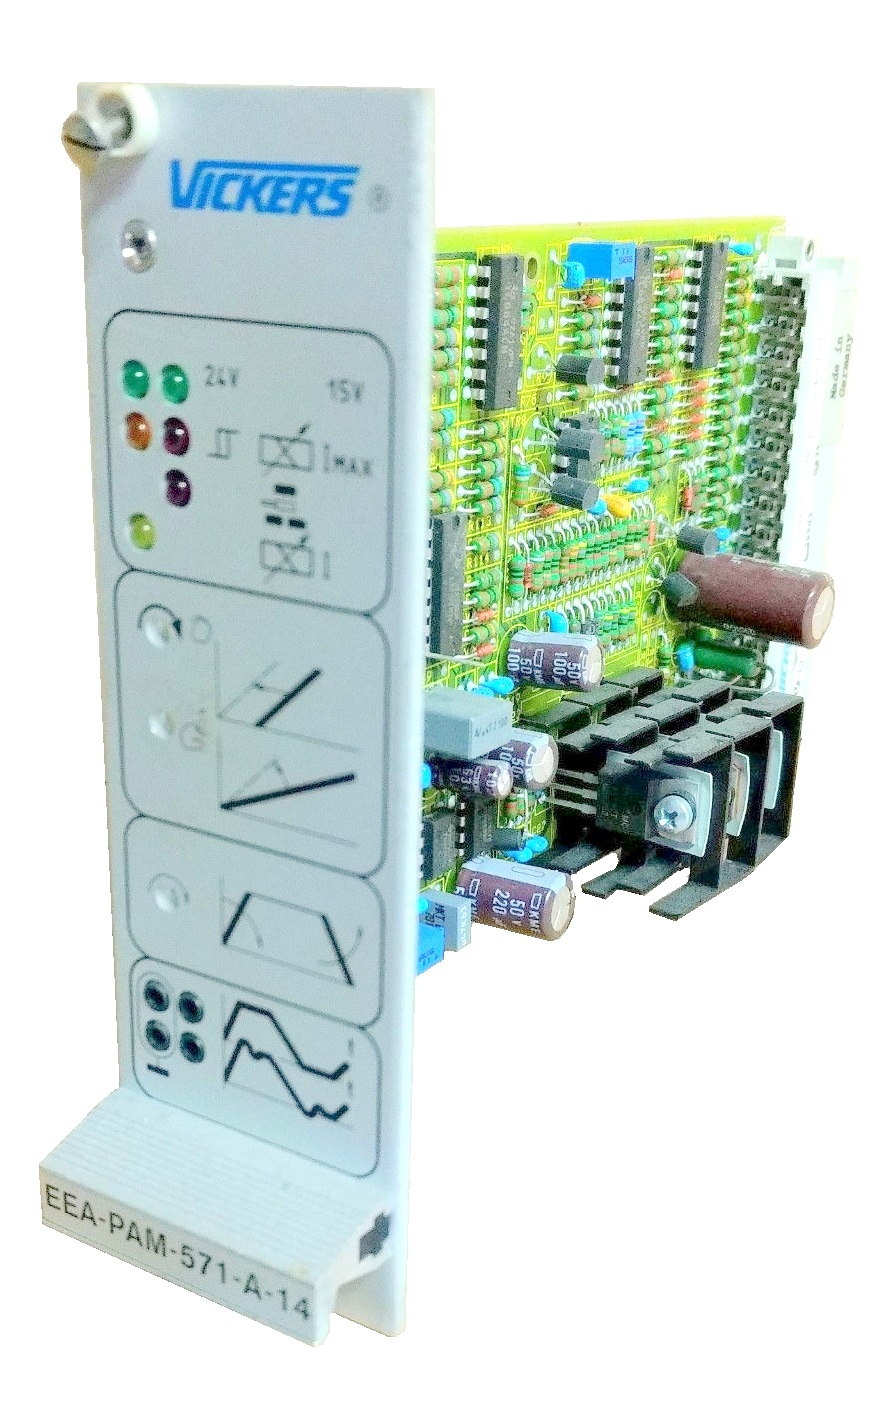 EEA-PAM-A-14 Amplifier Cards